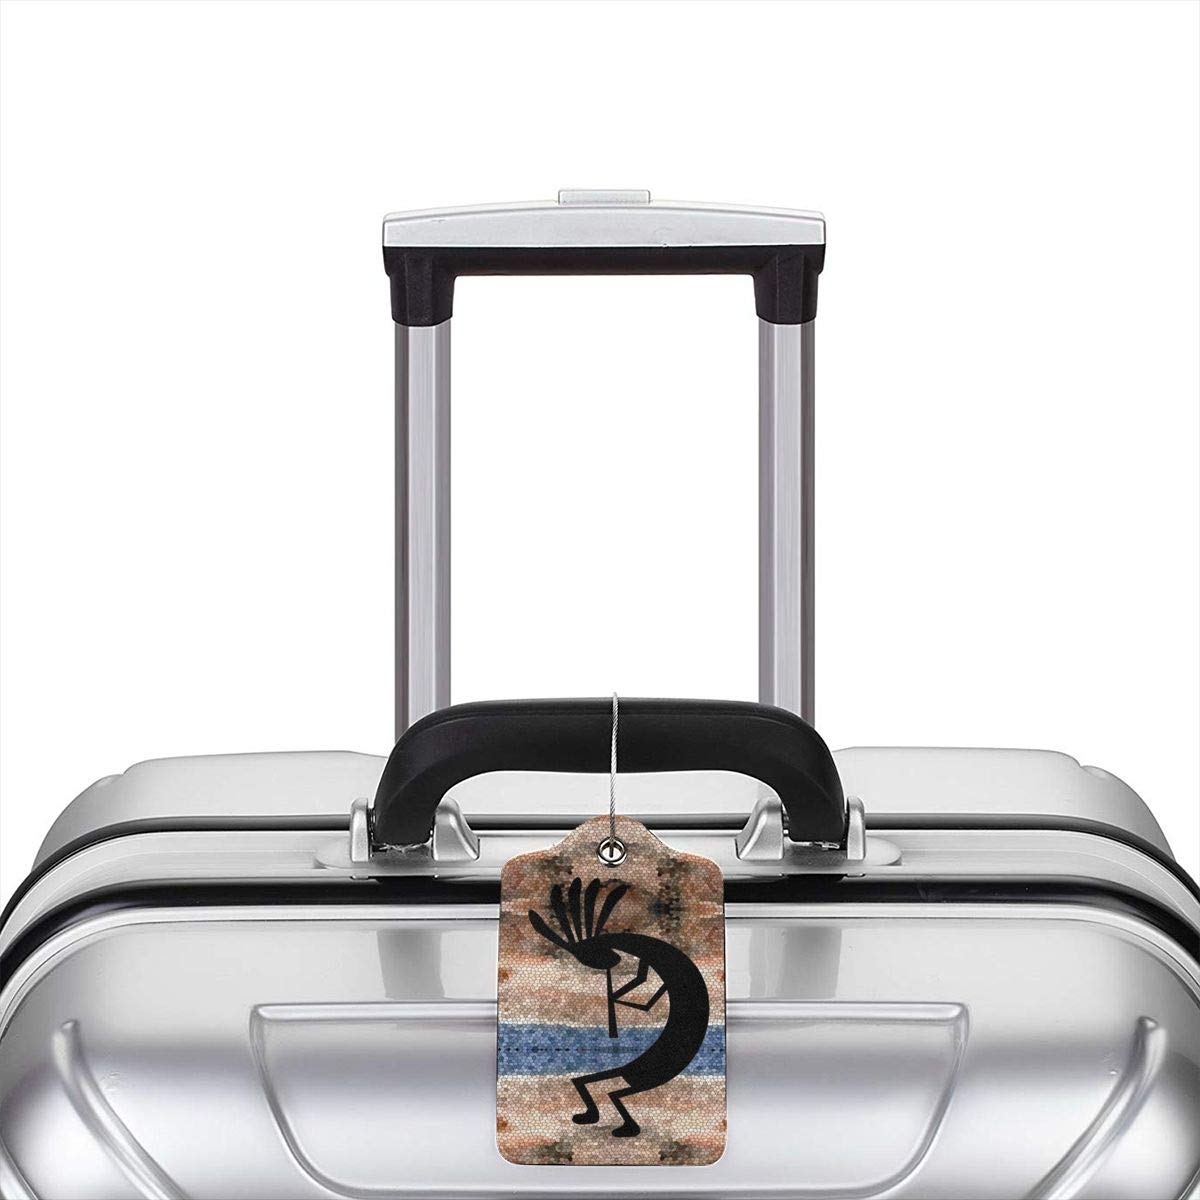 Leather Luggage Tag Kokopelli Southwest Desert Luggage Tags For Suitcase Travel Lover Gifts For Men Women 2 PCS